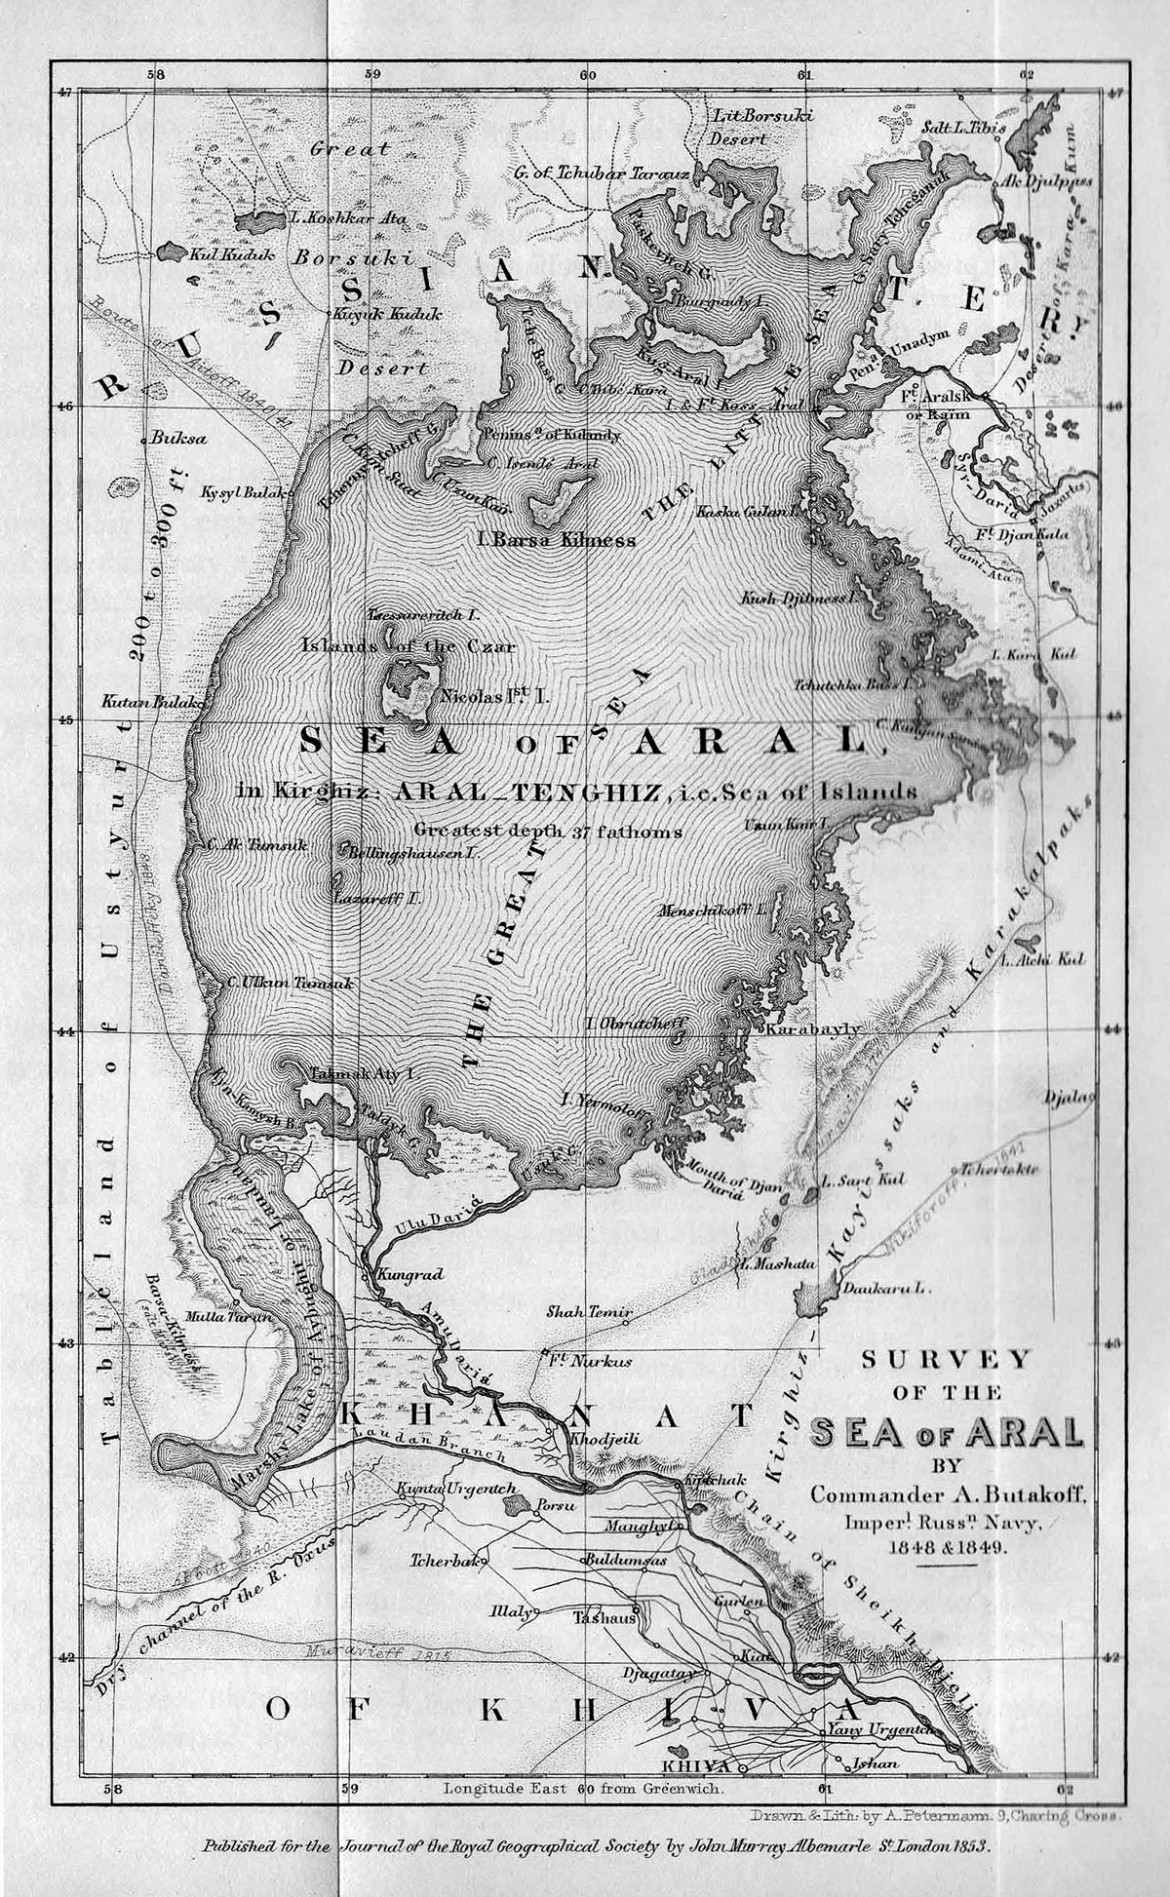 Commander Butakov's map of the Aral Sea from 1849.